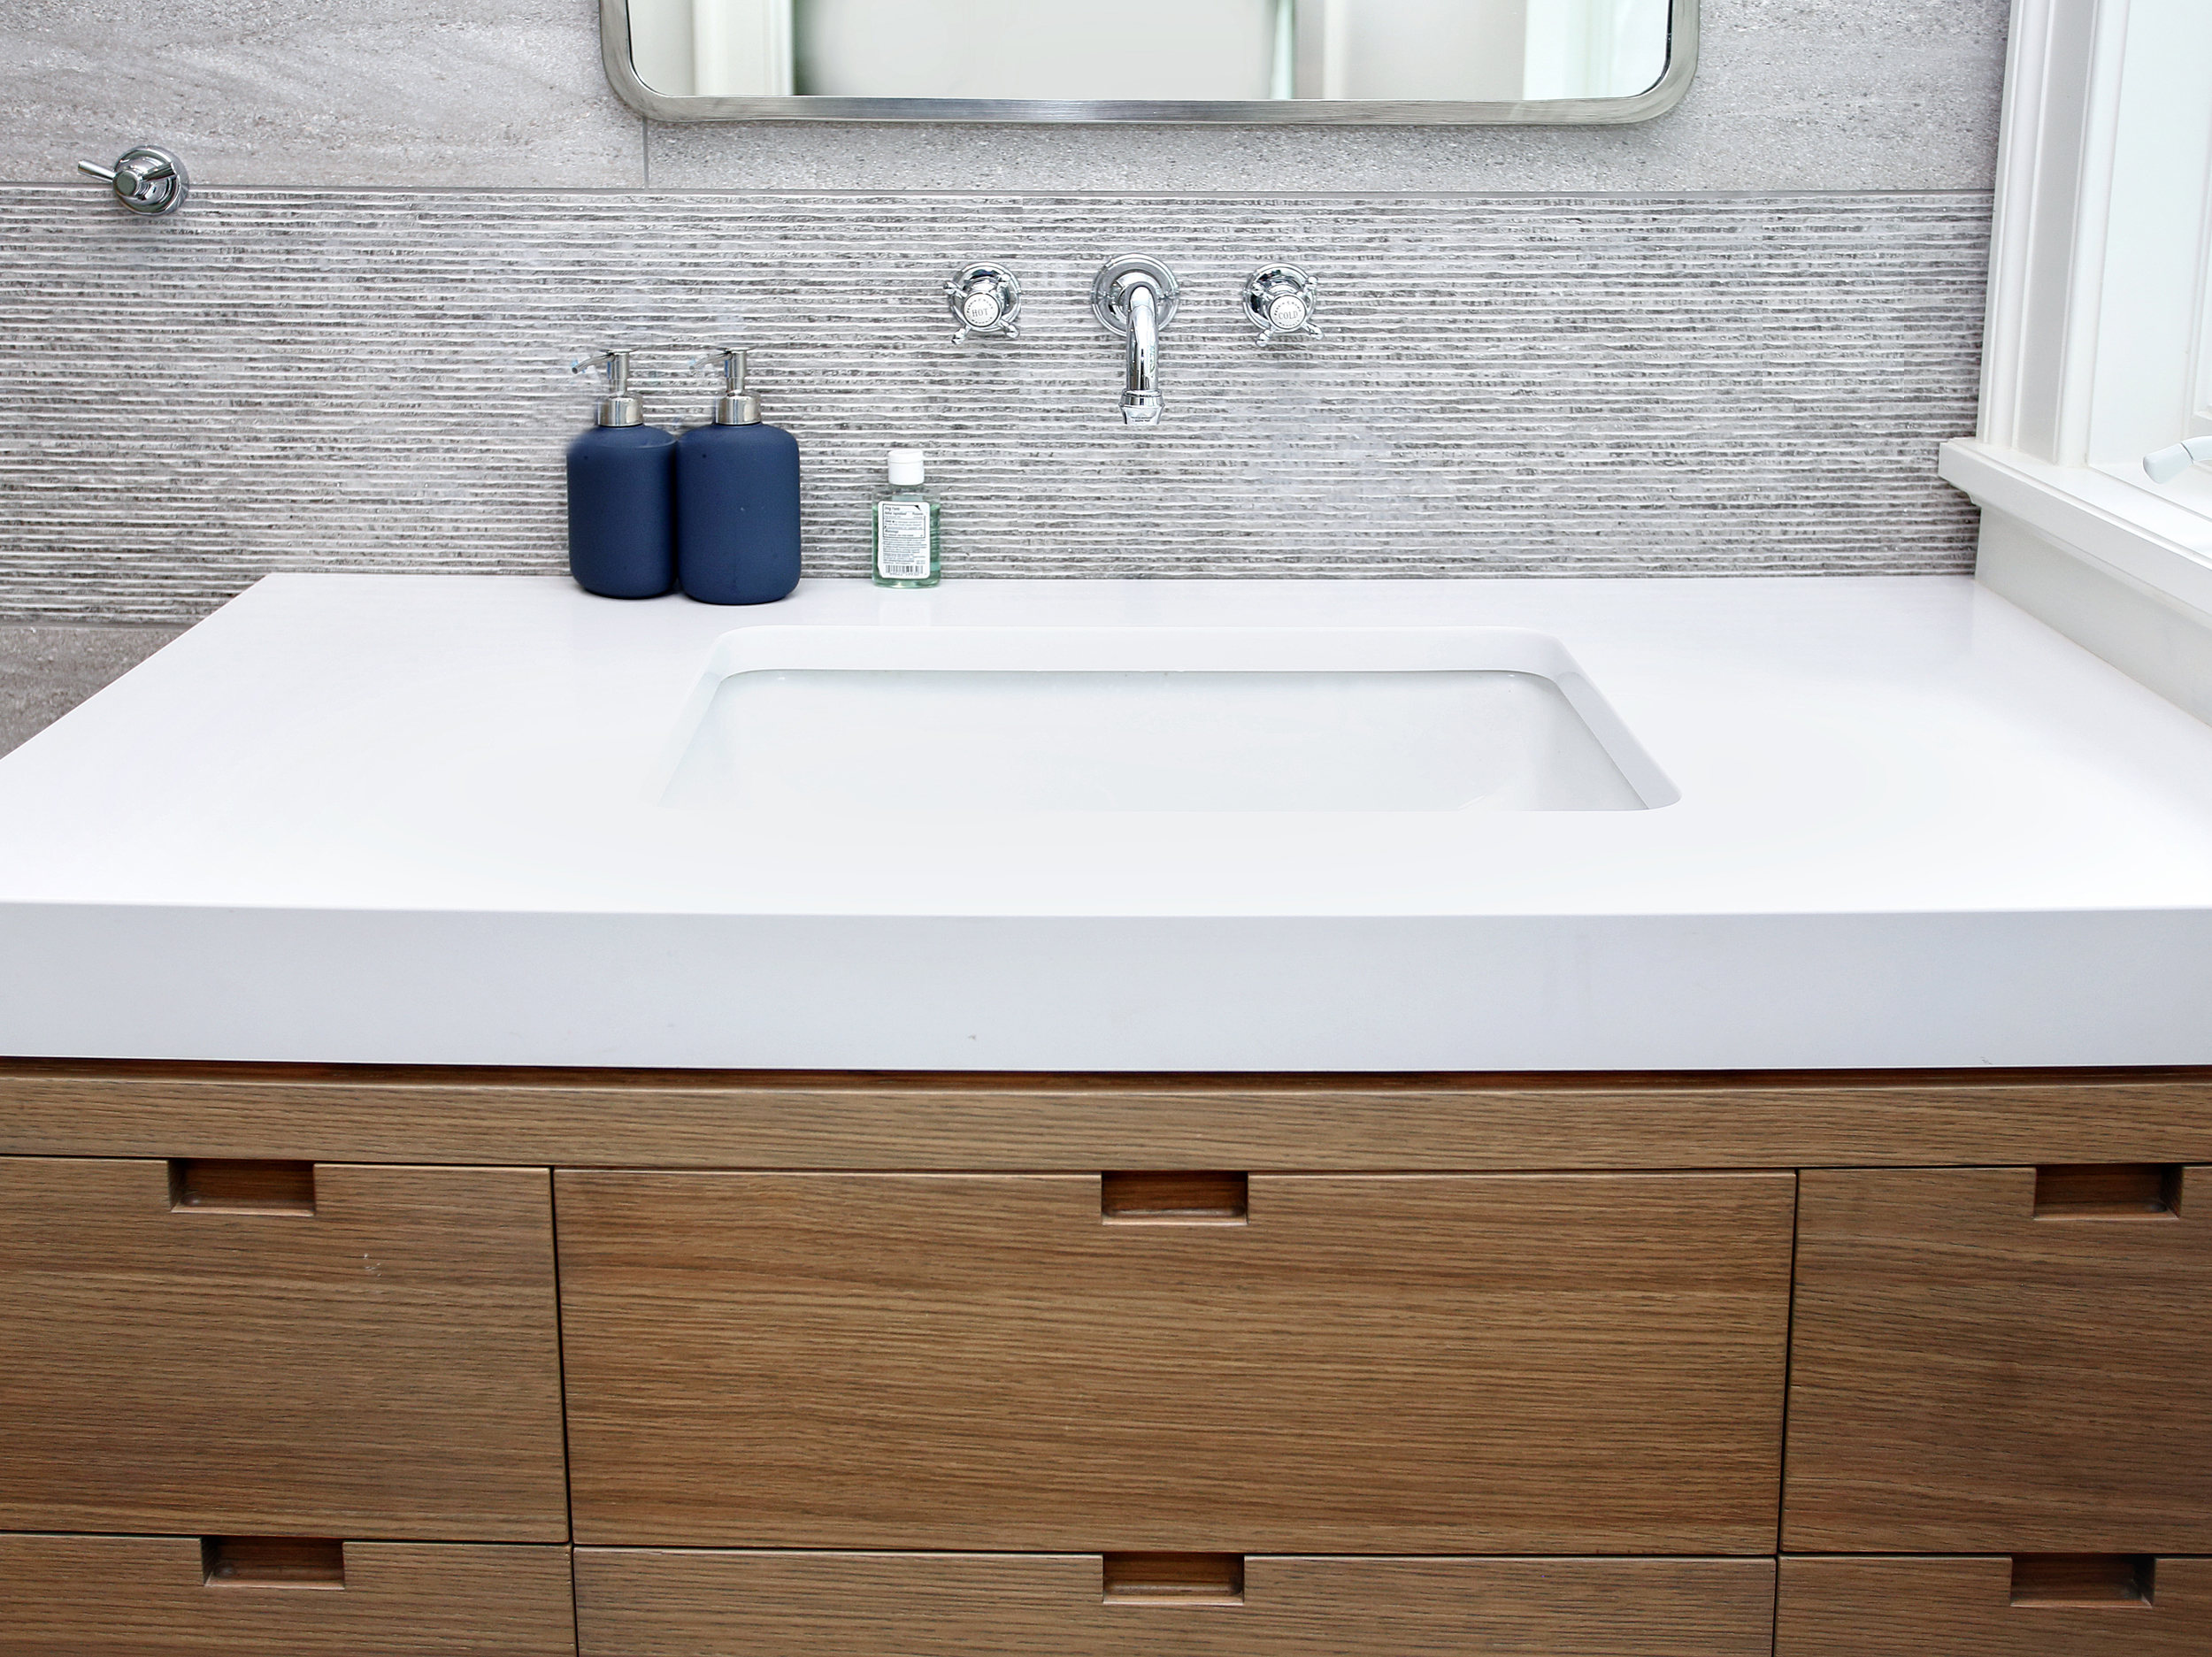 "In the boys bathroom, large shower and wall behind the vanity were clad in a porcelain tile that resembles concrete.  We used alternating bands of two textures along the full height of the walls.  The vanity is a custom white oak cabinet with built-in finger pulls.  The counter is a mitered white quartz counter so that the edges appear 3"" thick.  The countertop material and cabinet are seperated by a 3/8"" reveal to give a shaddow and finished look to the flush condition."